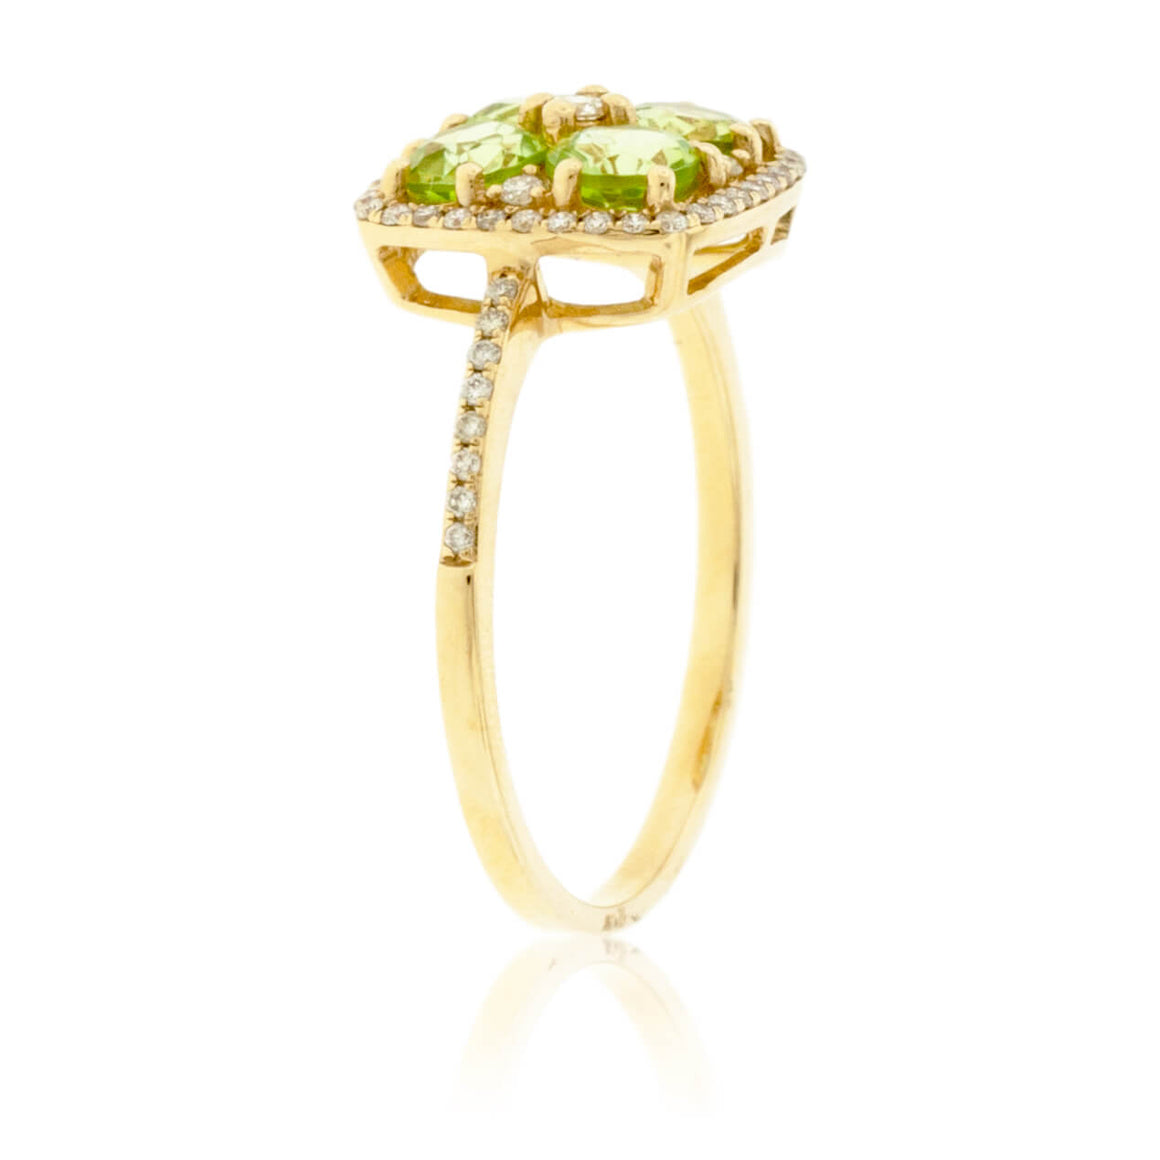 Four Center Stone Peridot & Diamond Ring